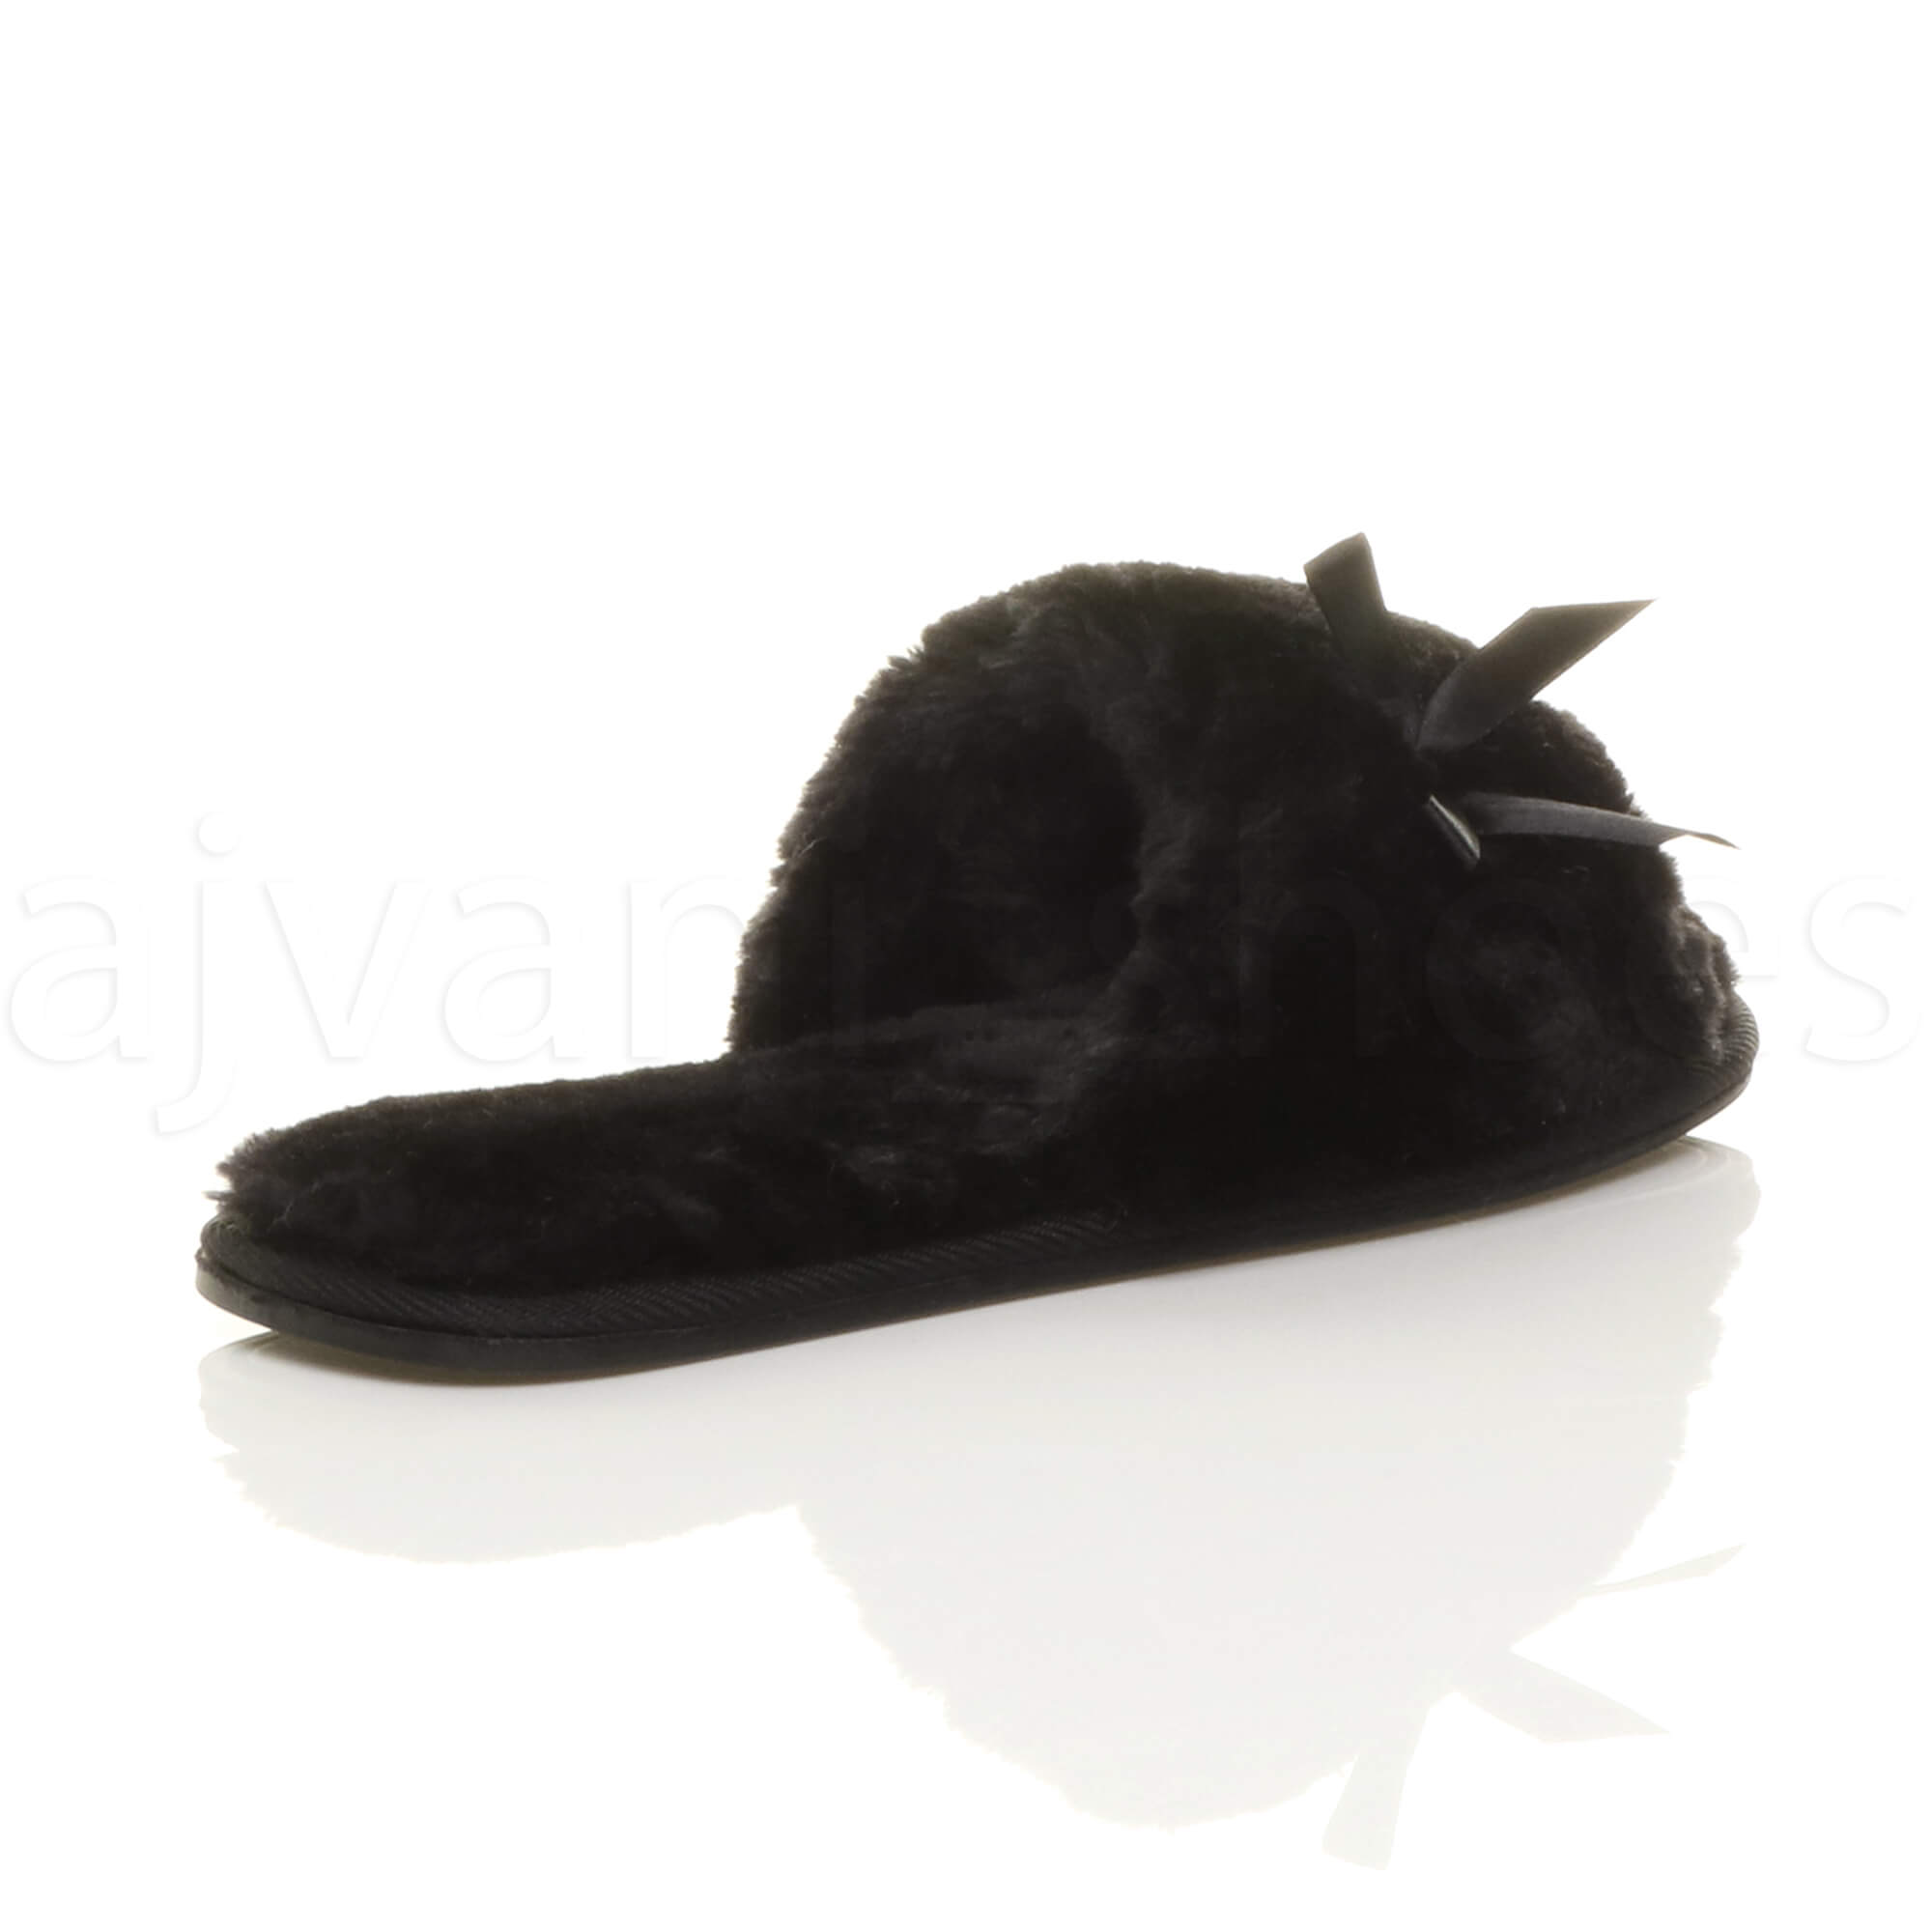 WOMENS-LADIES-FLAT-PEEP-TOE-BOW-LUXURY-COSY-FUR-LINED-SLIP-ON-SLIPPERS-SIZE thumbnail 13